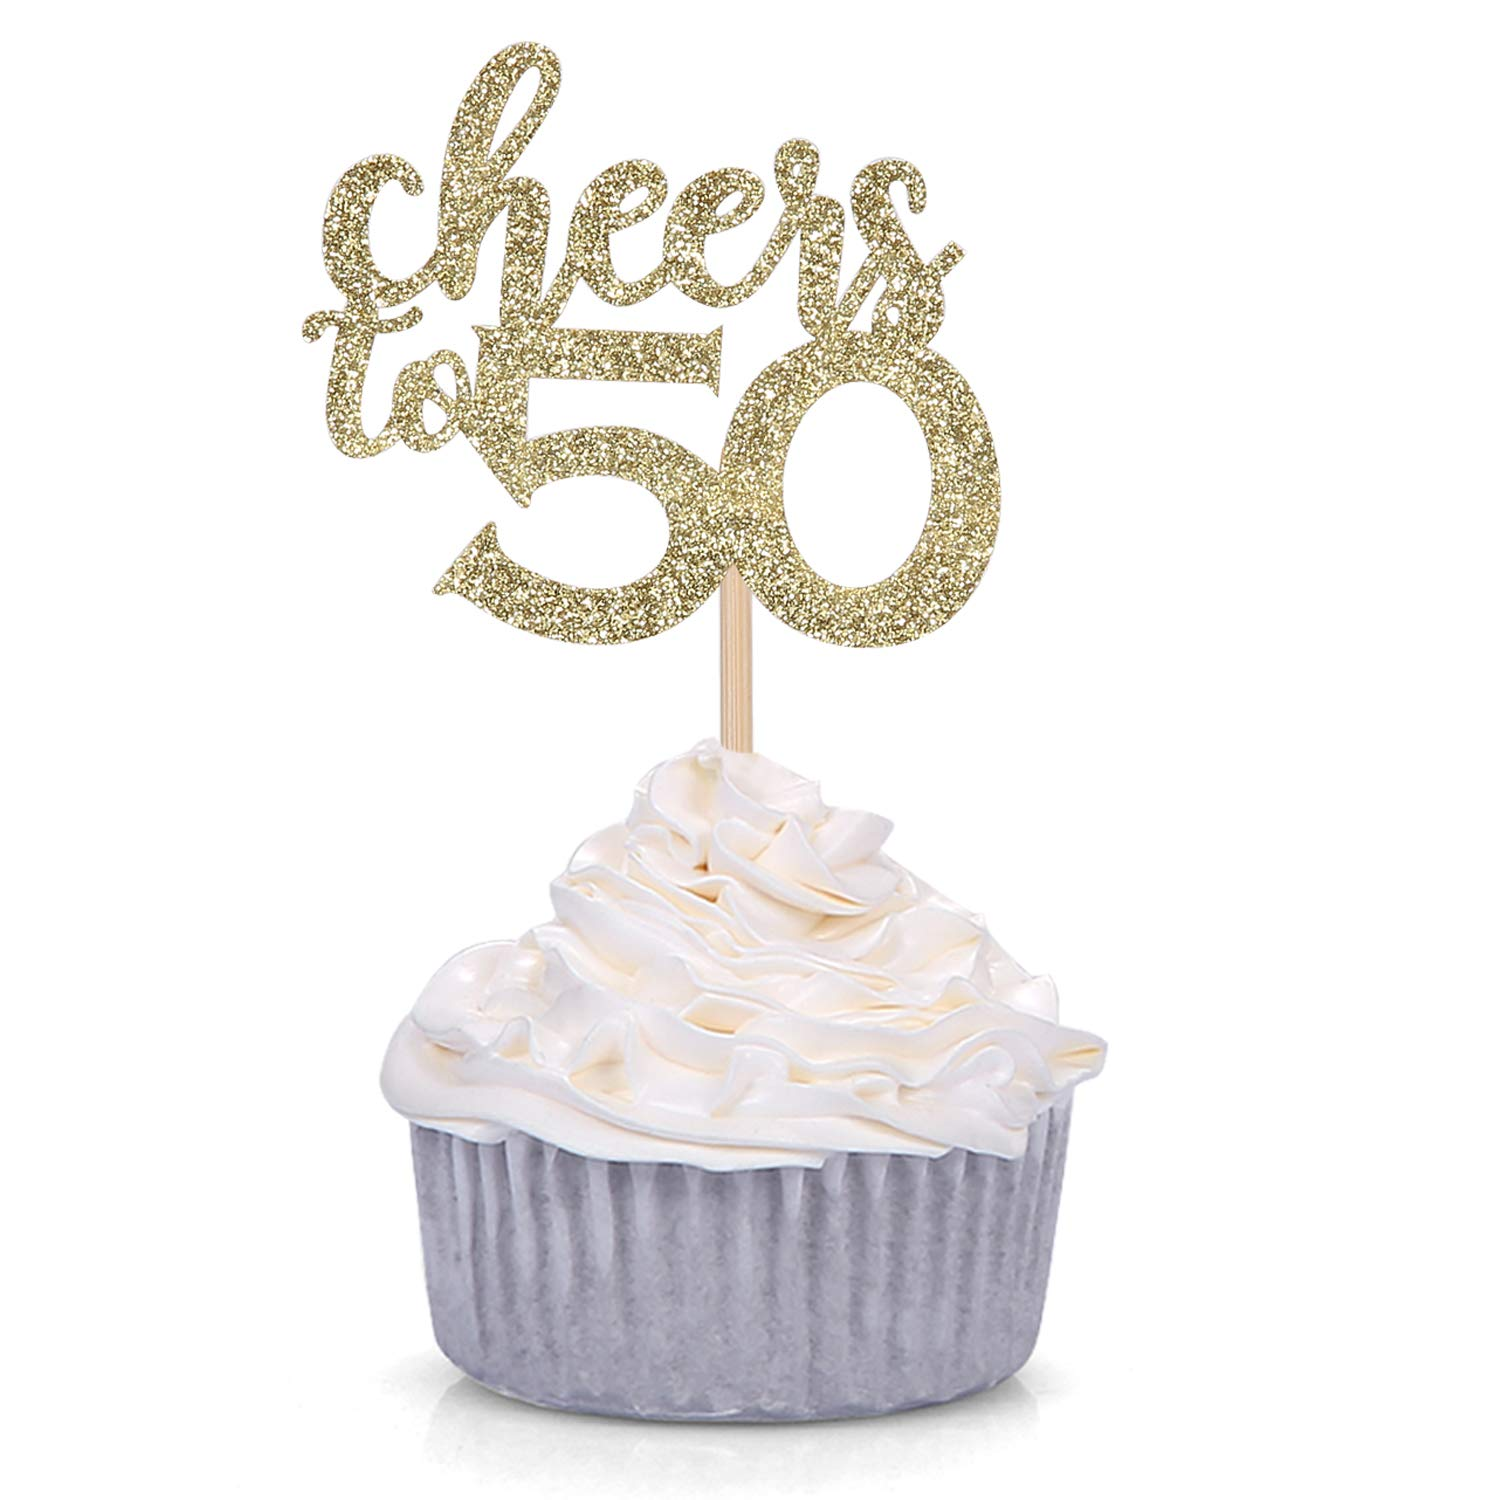 Amazon Gold Glitter Cheers To 50 Cupcake Toppers 50th Birthday Celebrating Party Decorations Toys Games